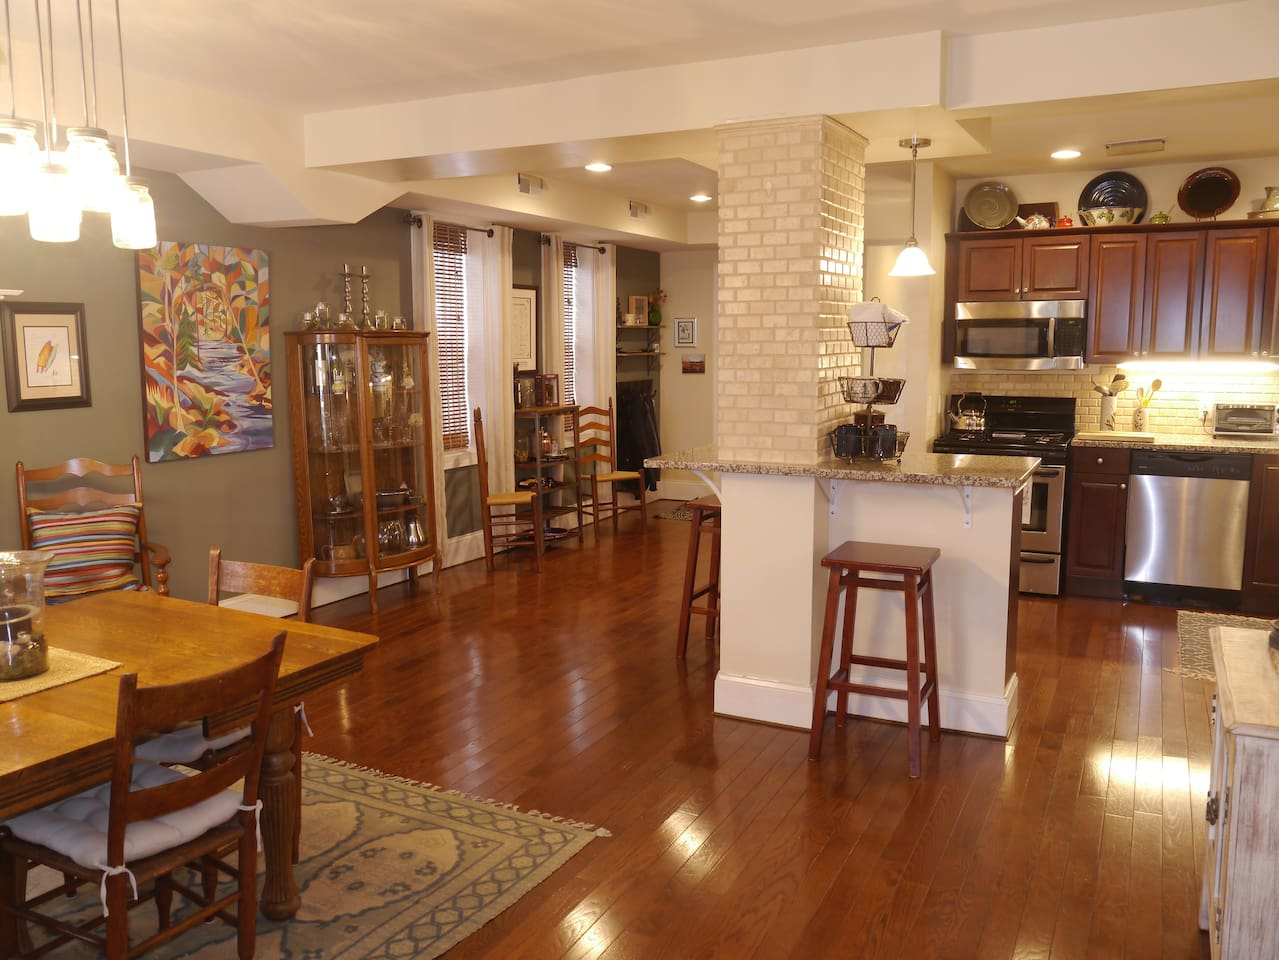 Open concept kitchen and dining room with plenty of space to mingle and enjoy.